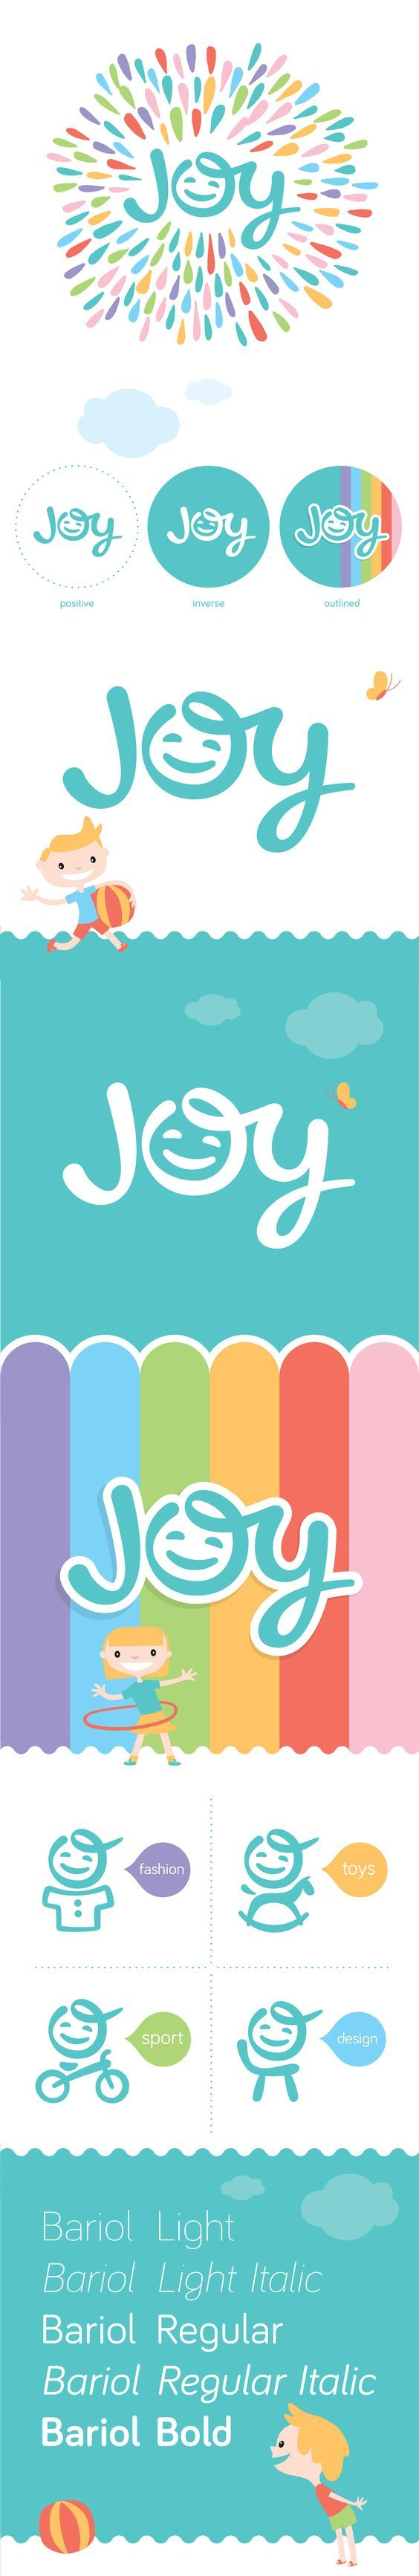 JOY logo on Behance: